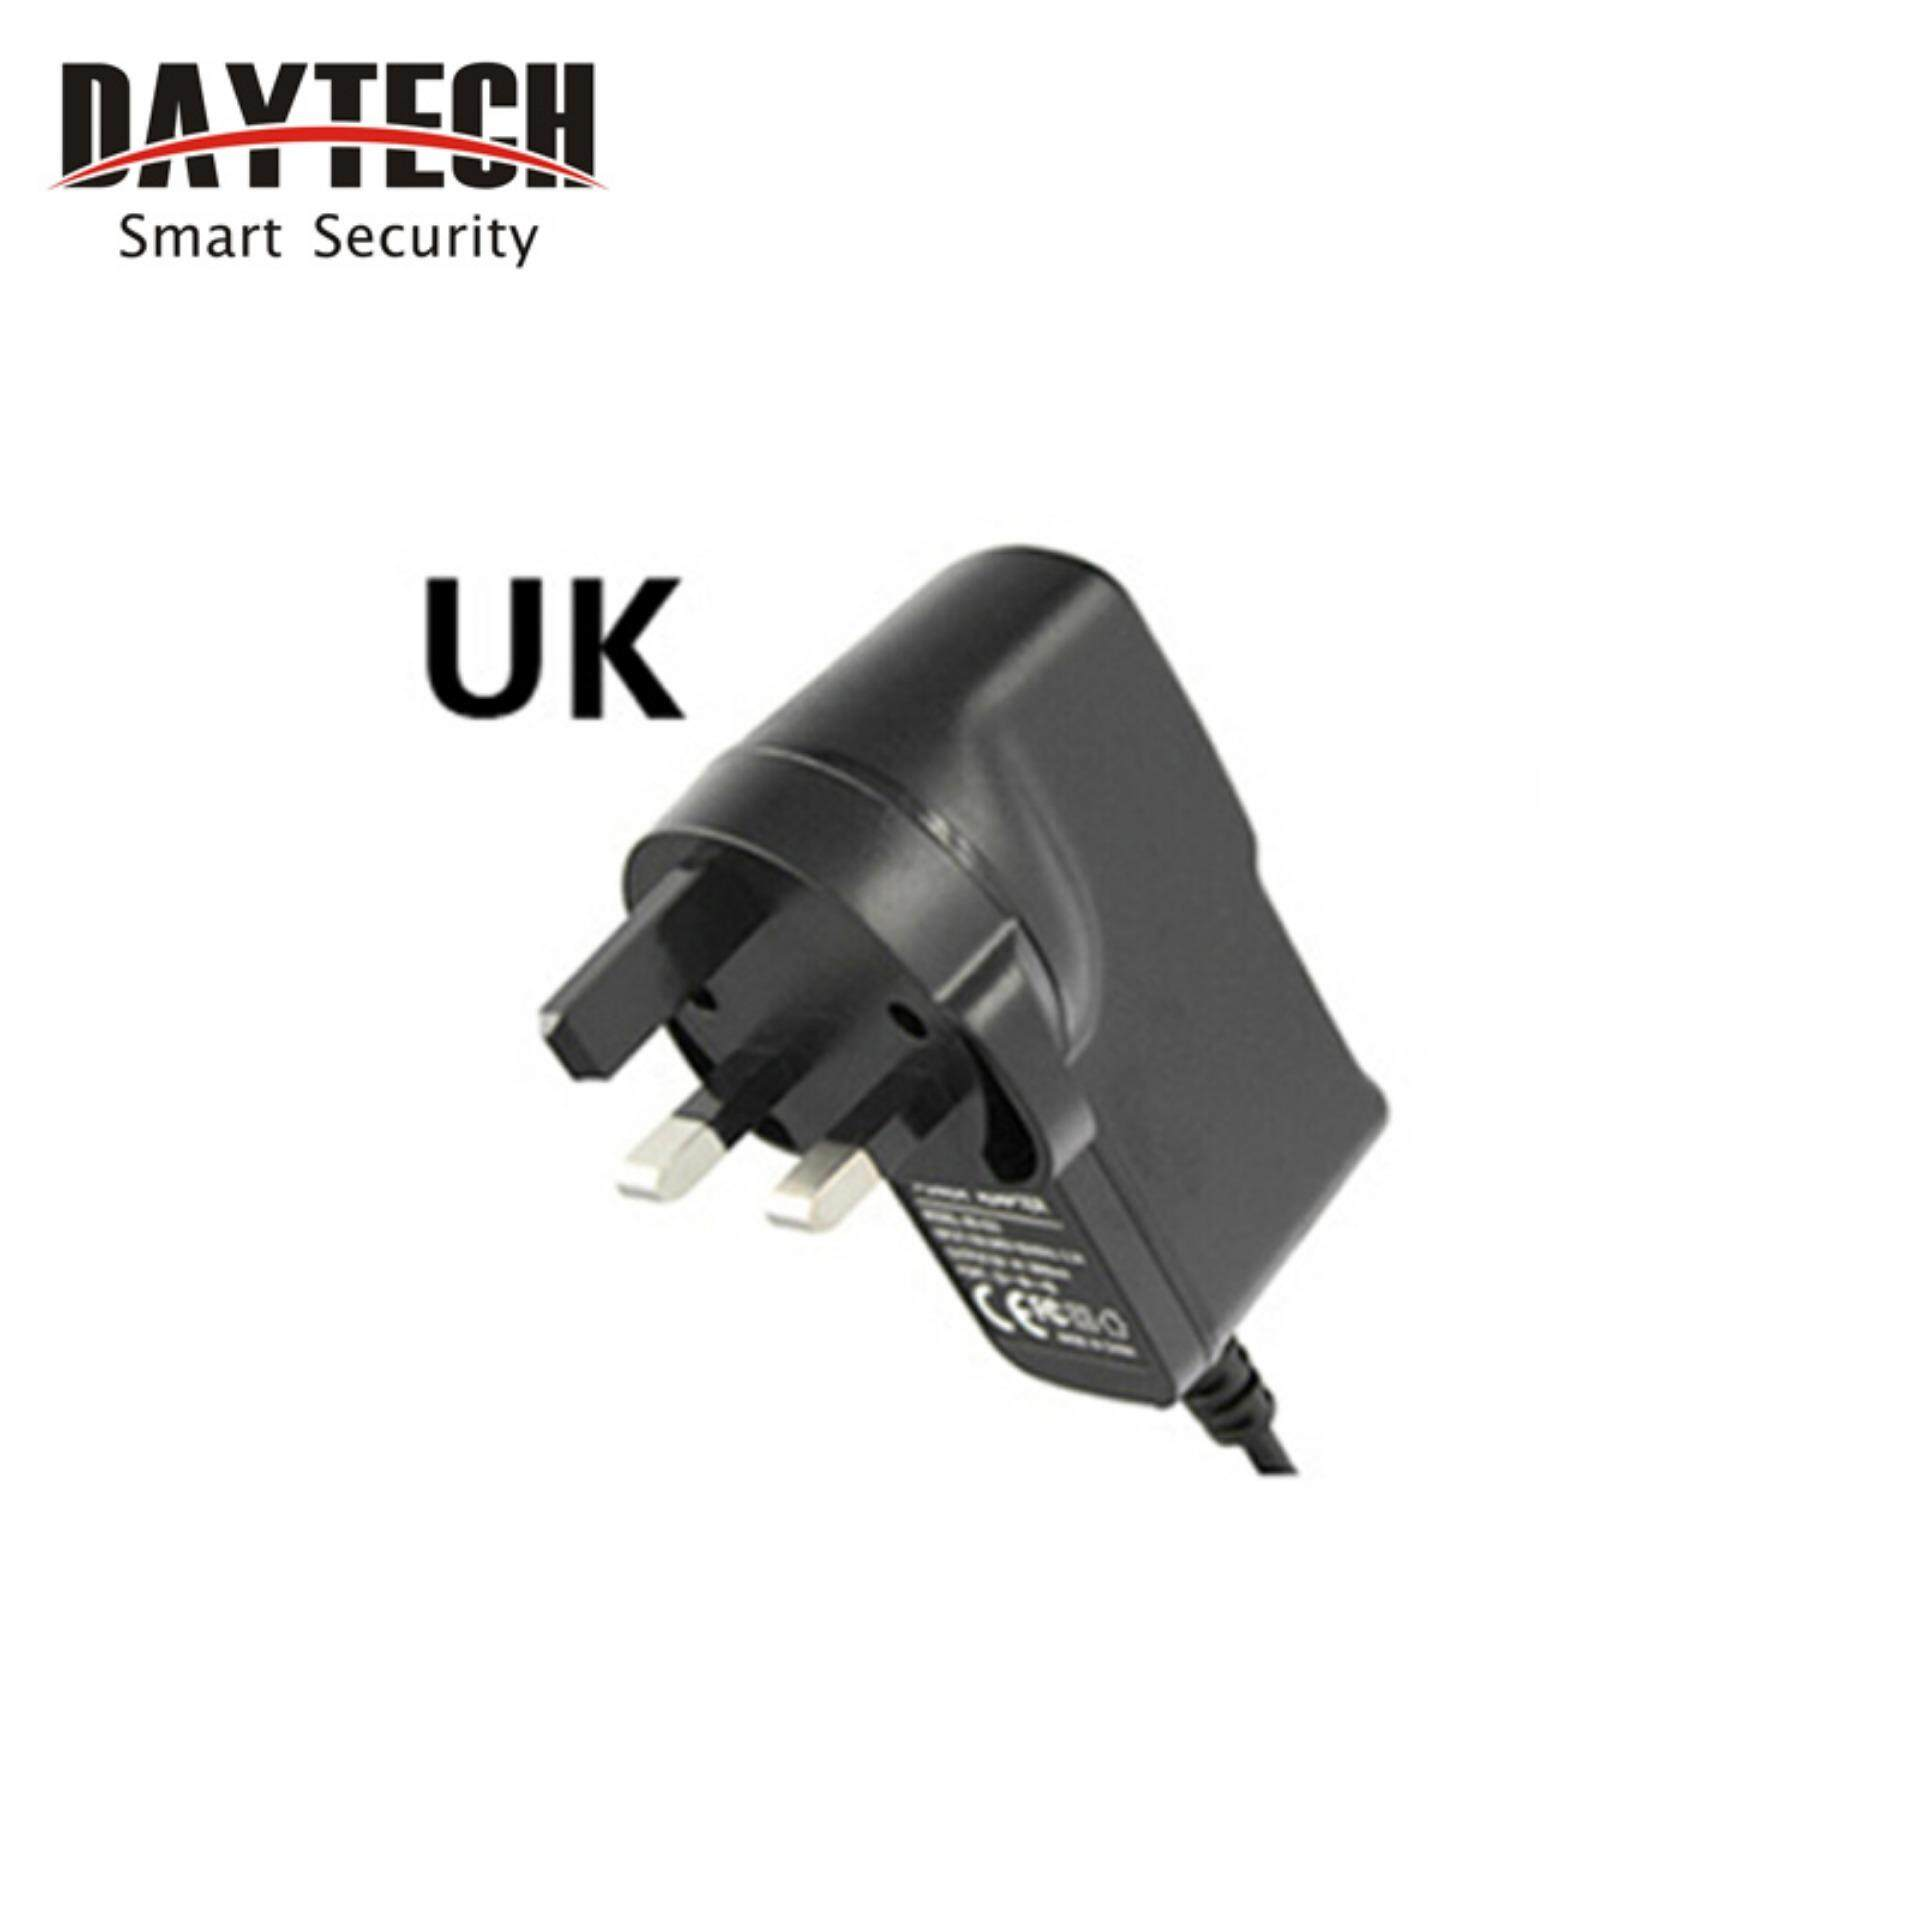 High Quality Overvalue Universal Uk Plug For Cctv Security Wifi Ip Camera For Dc 5v 2a Power Cable By Daytech Official Store.